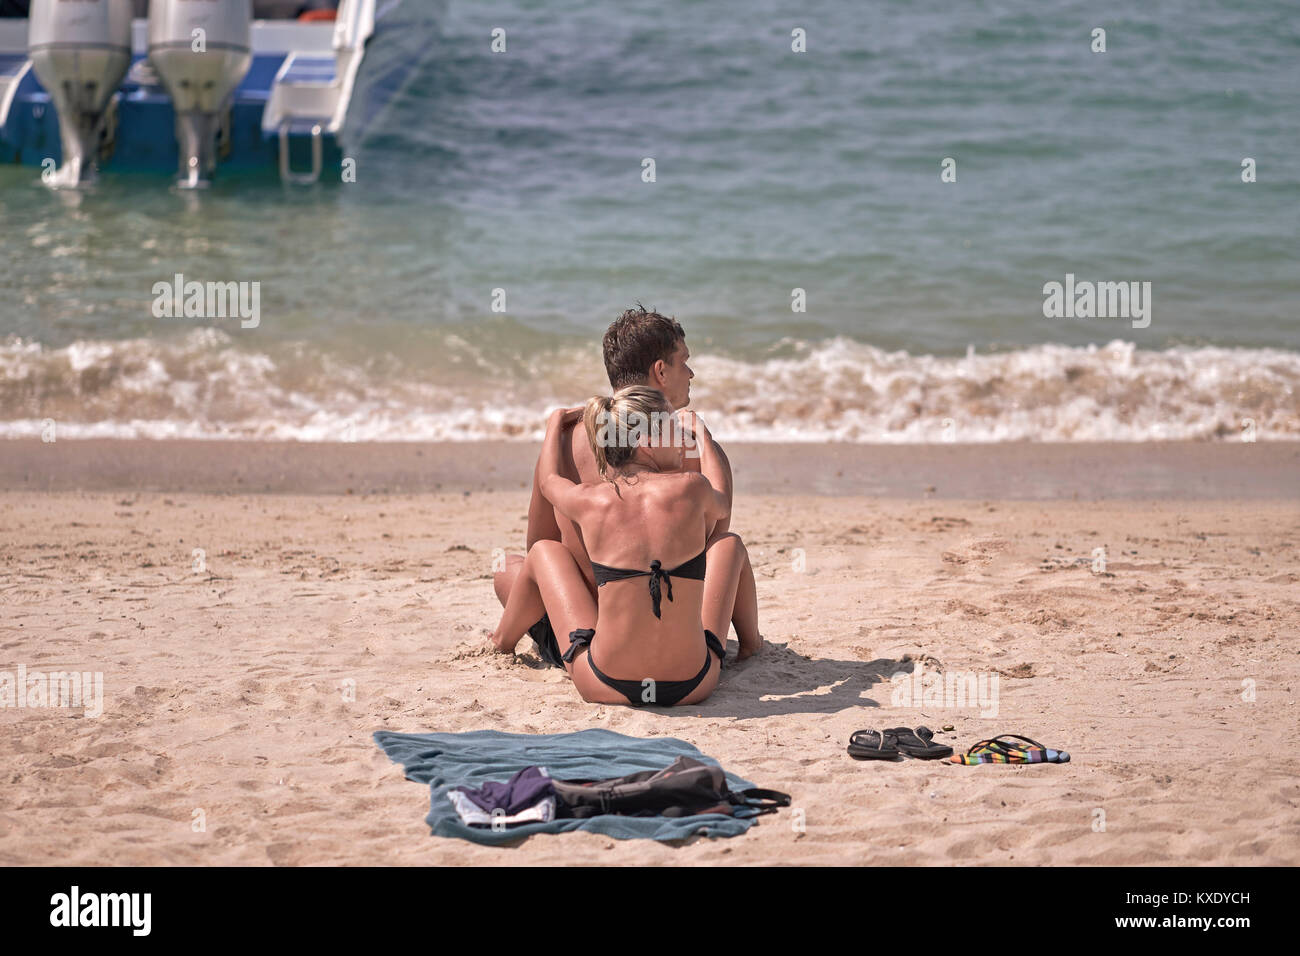 couple bonding in an affectionate coupling on the beach. Sunbathing and togetherness. Man and woman bonding. - Stock Image